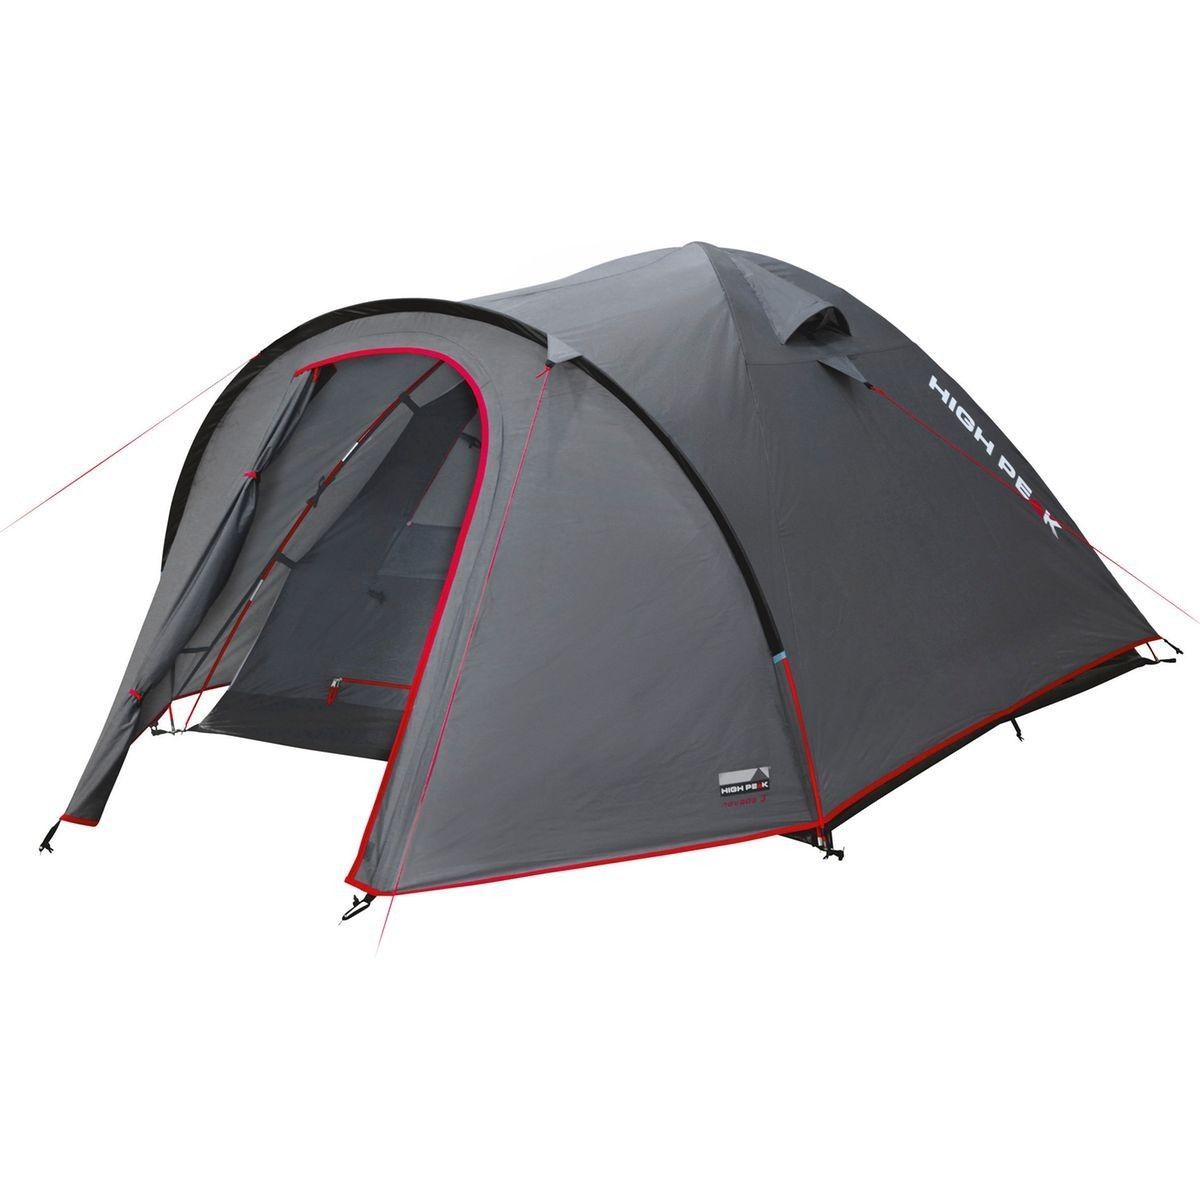 Nevada 4 Tente Gris Taille Taille Unique Tente Gonflable Tentes Camping